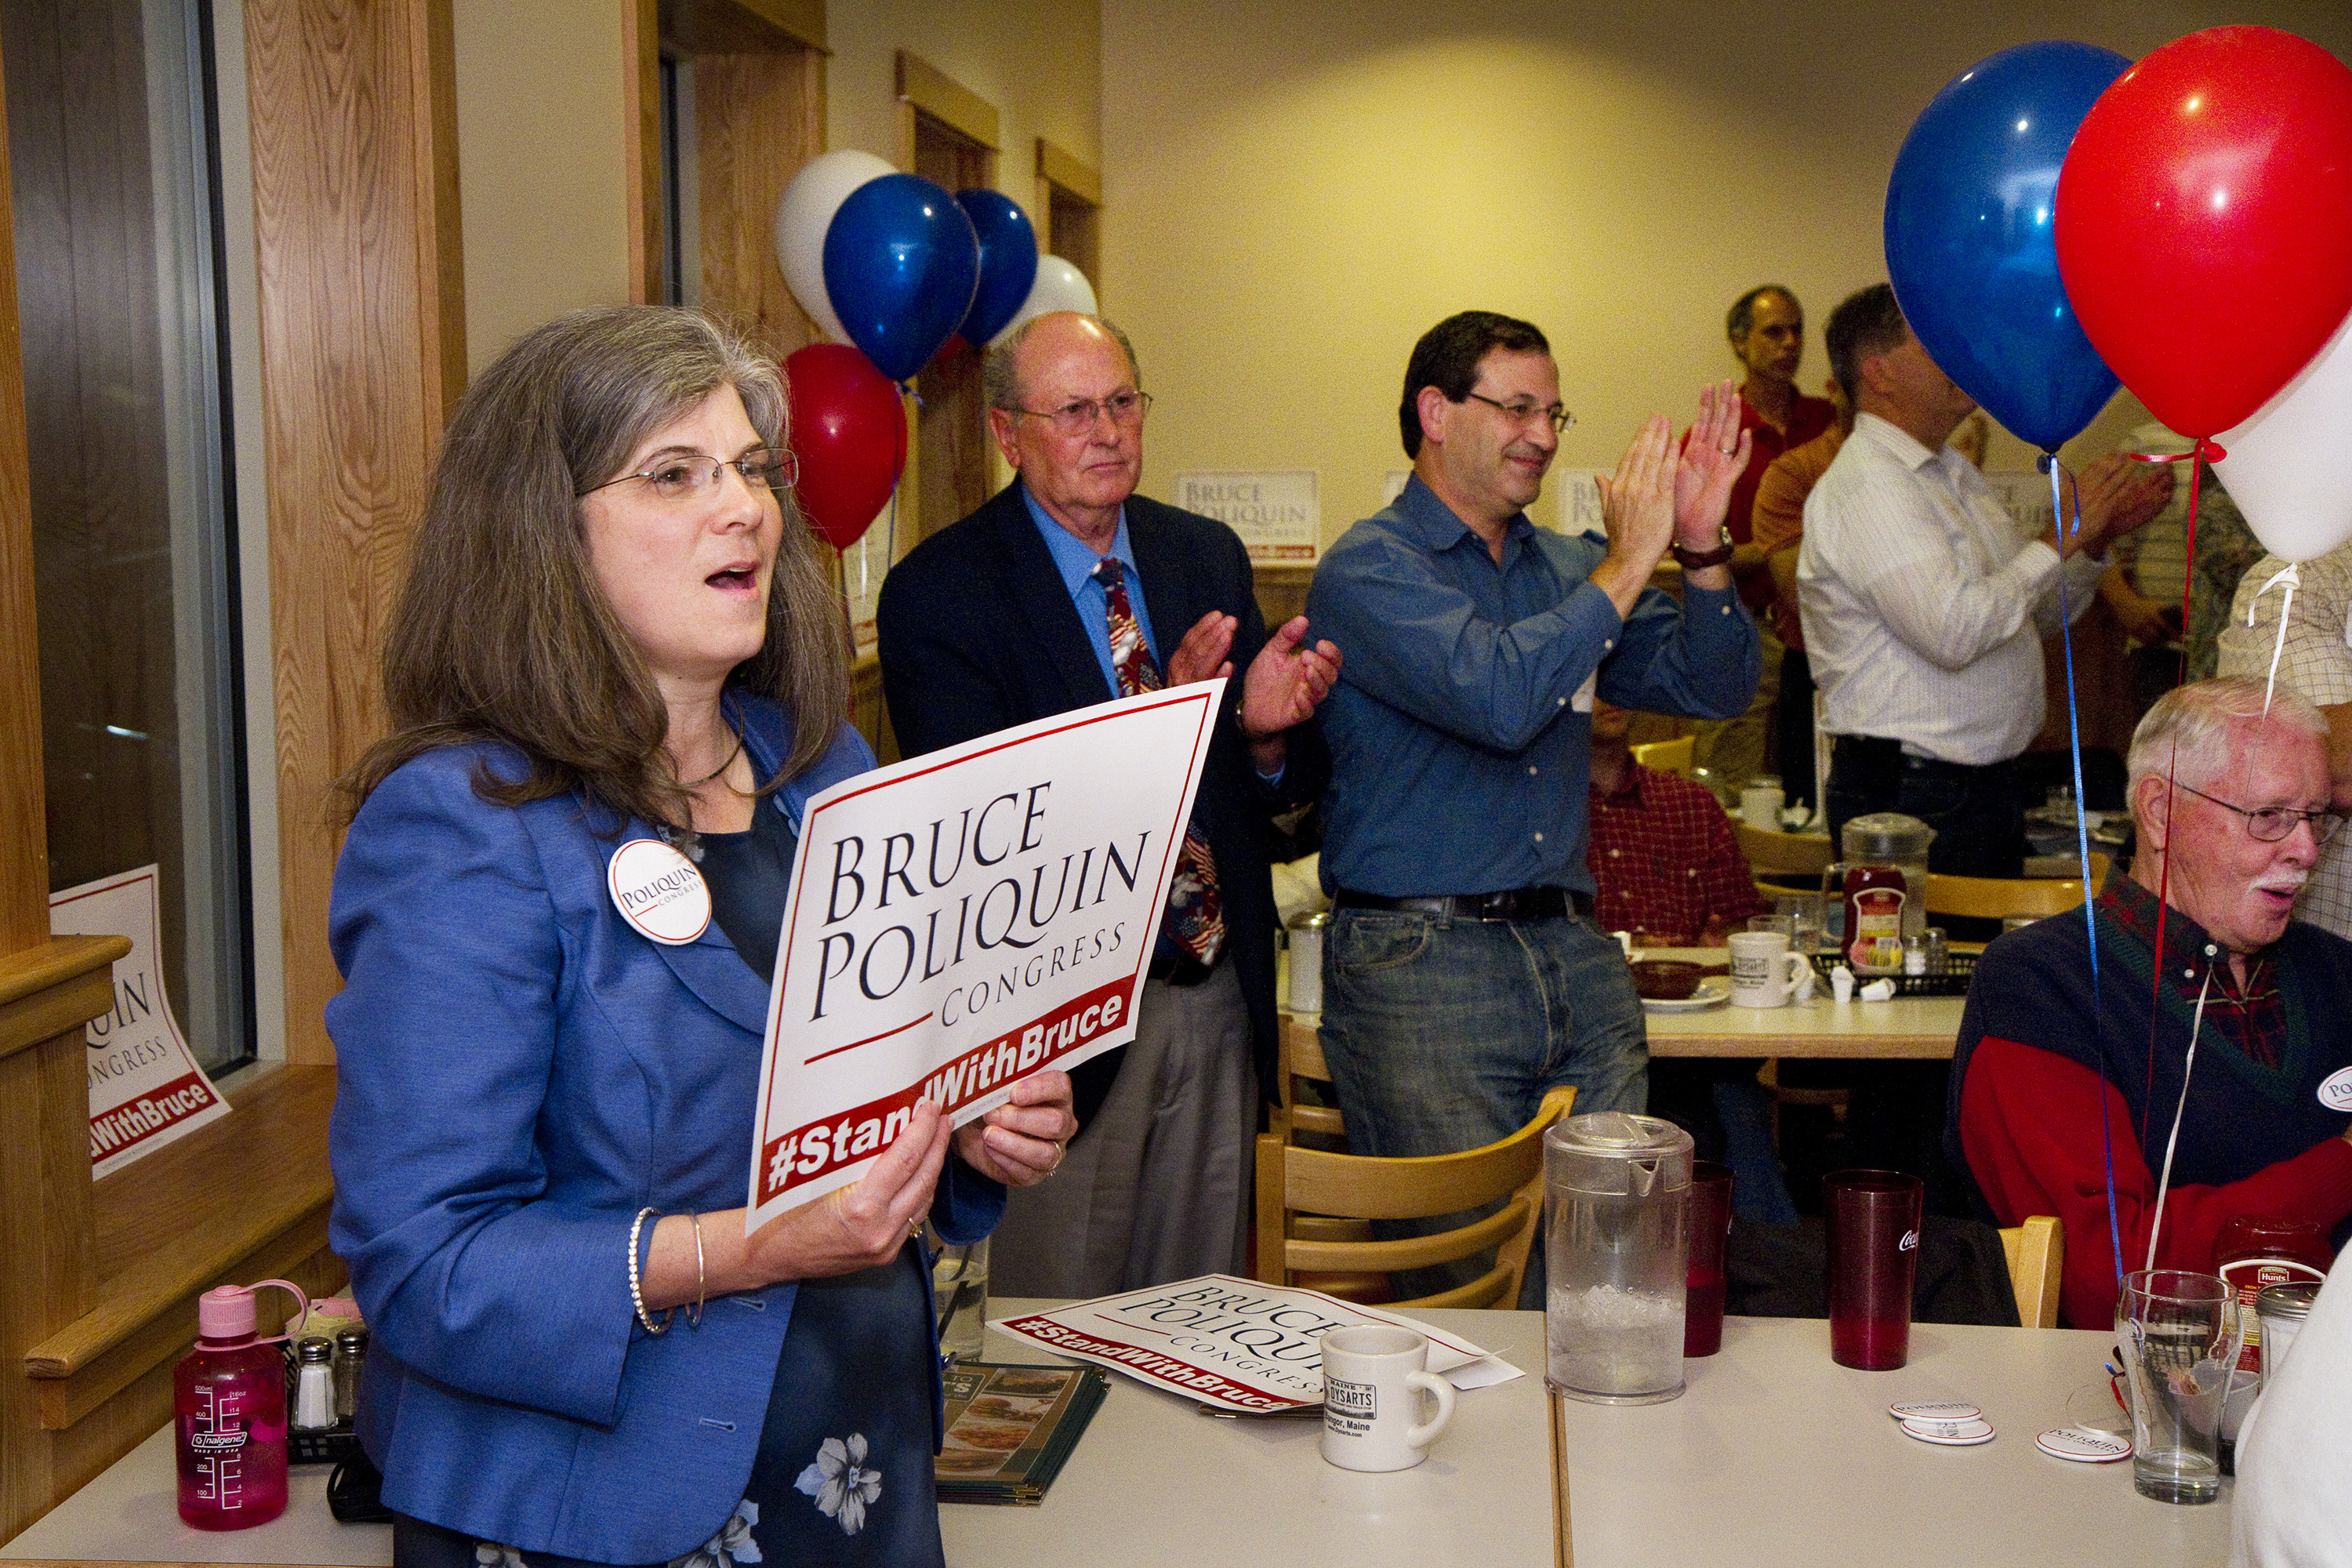 Bruce Poliquin supporters, including Joanne Gray of Charlston, left, cheer on their candidate after declaring victory. Carl D. Walsh/Staff Photographer